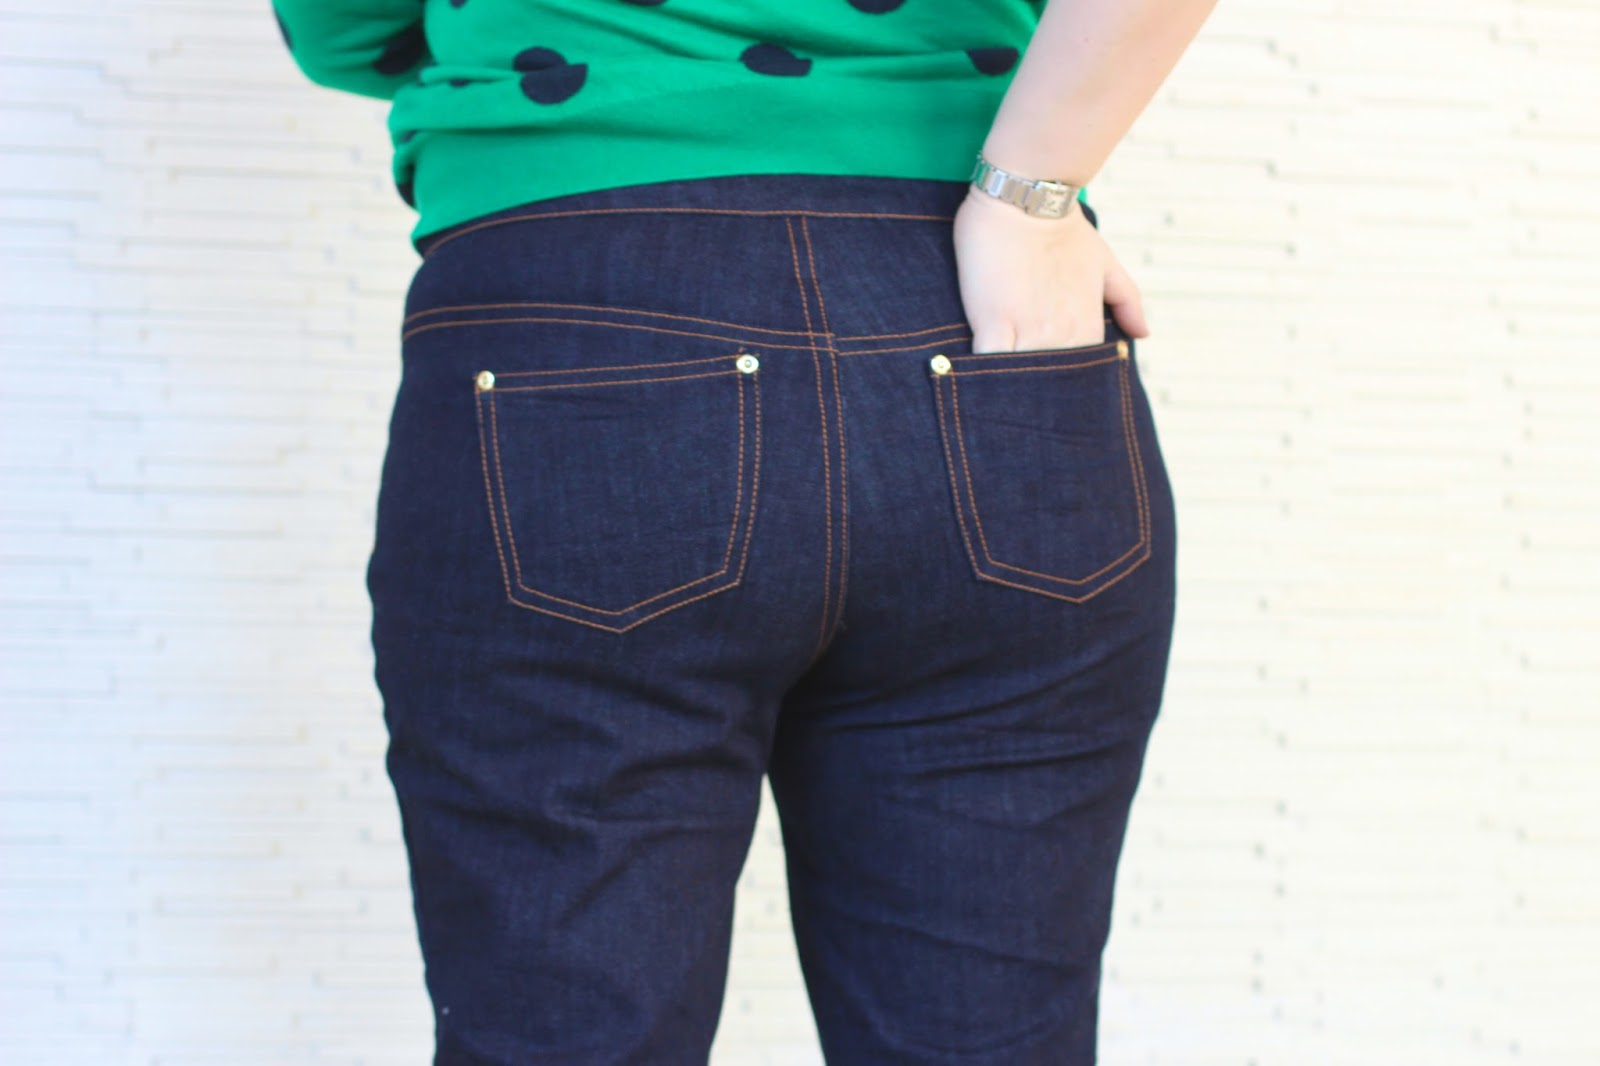 Closet Case Files Ginger Jeans view B